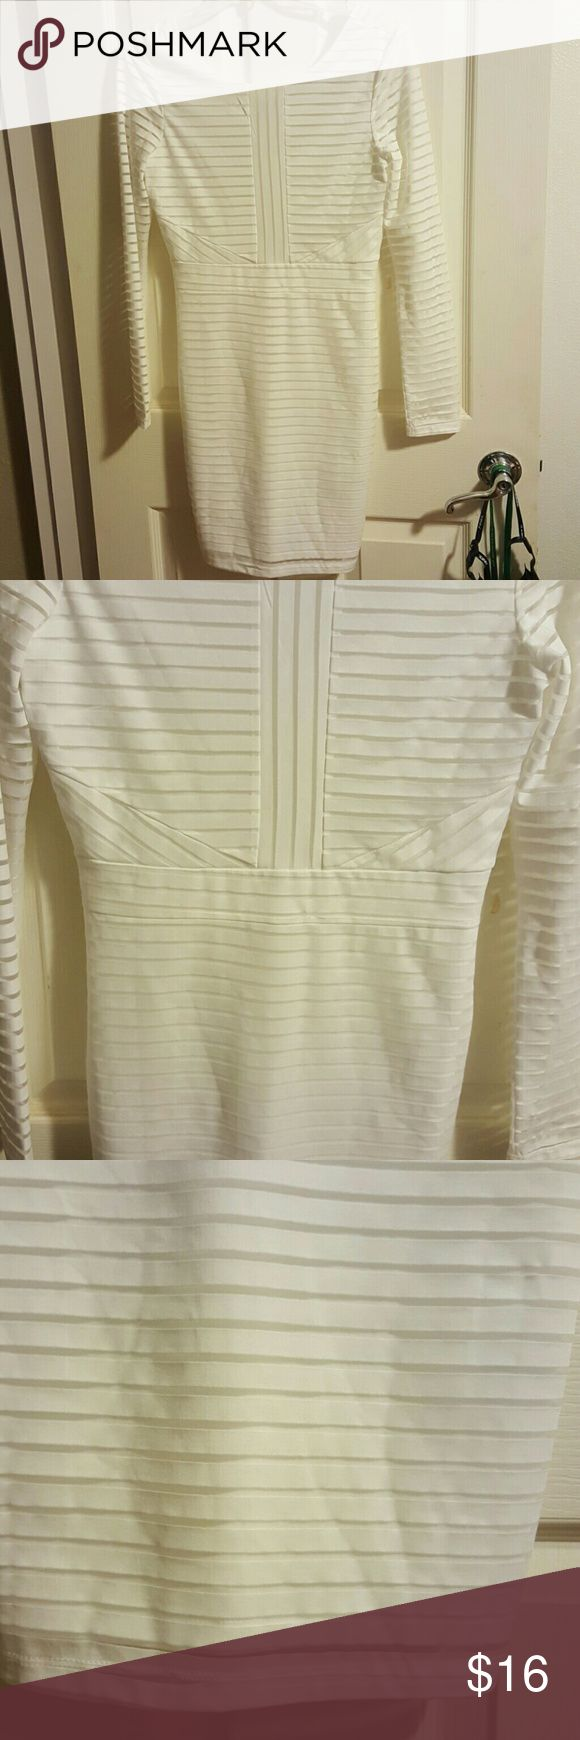 White long sleeve striped stretchy v back dress White long sleeve striped stretchy v back dress Perfect for going out dancing or date night Never worn, immaculate condition   95% polyester  5% spandex  Size Medium  (Not nasty gal brand ) Nasty Gal Dresses